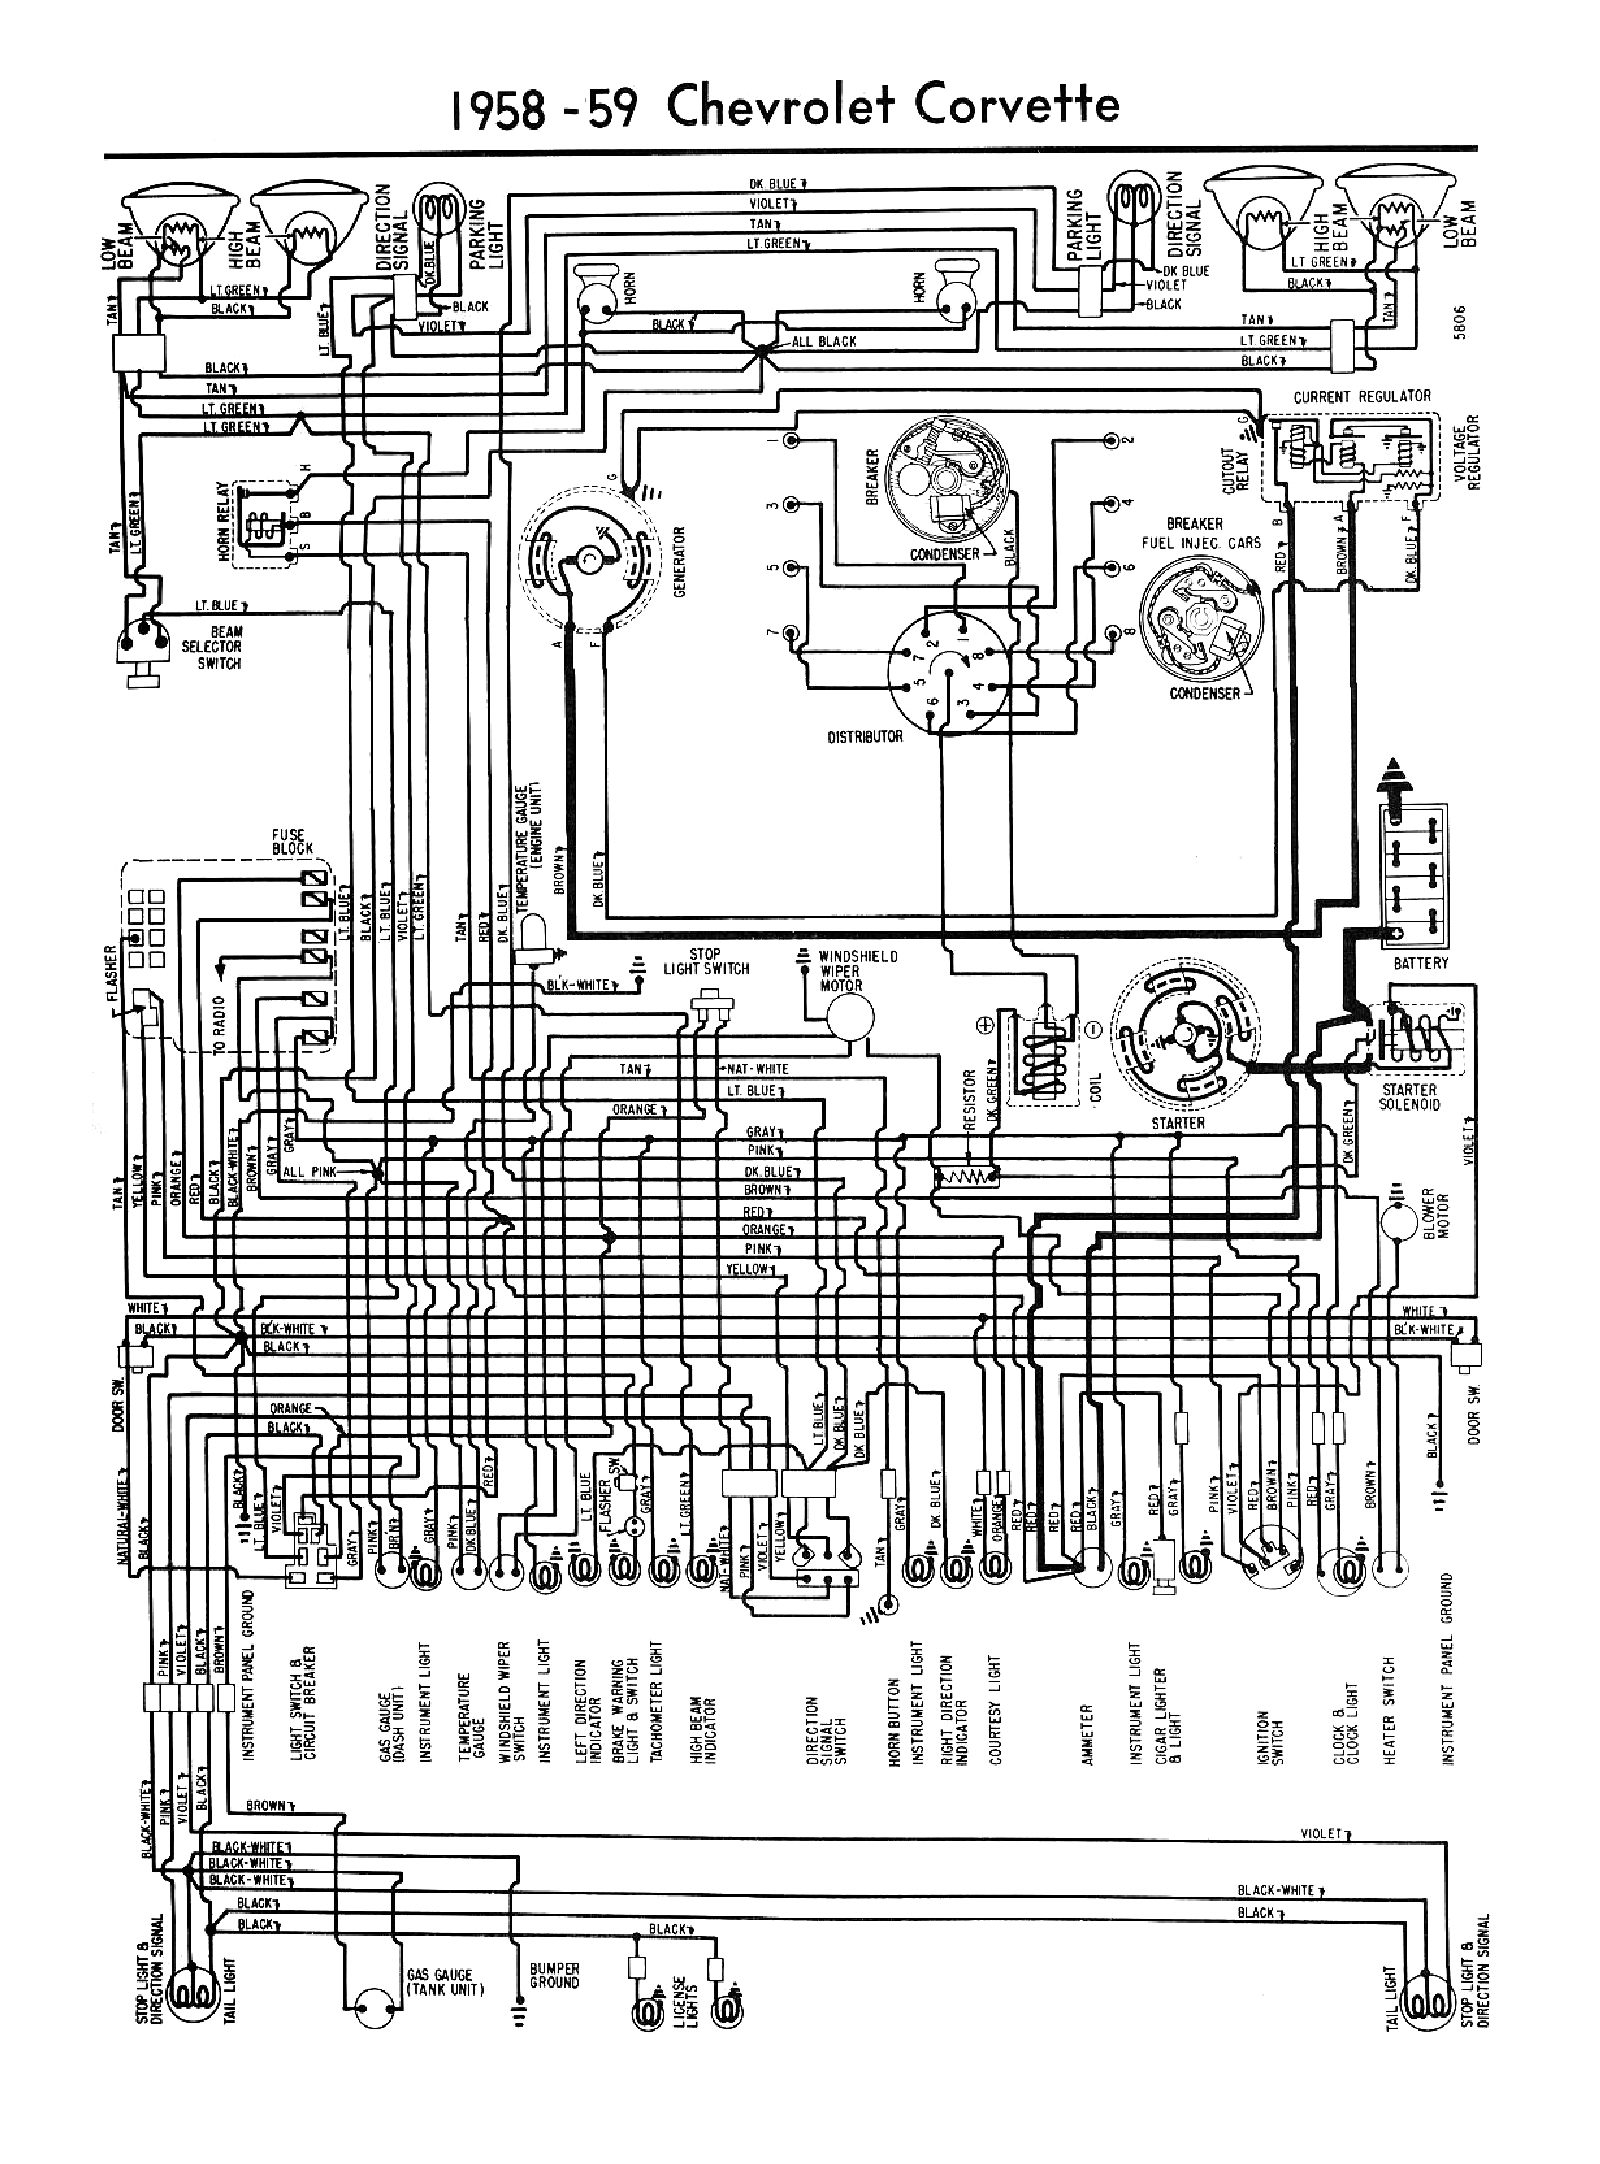 1992 Chevrolet 3500 Wiring Diagram